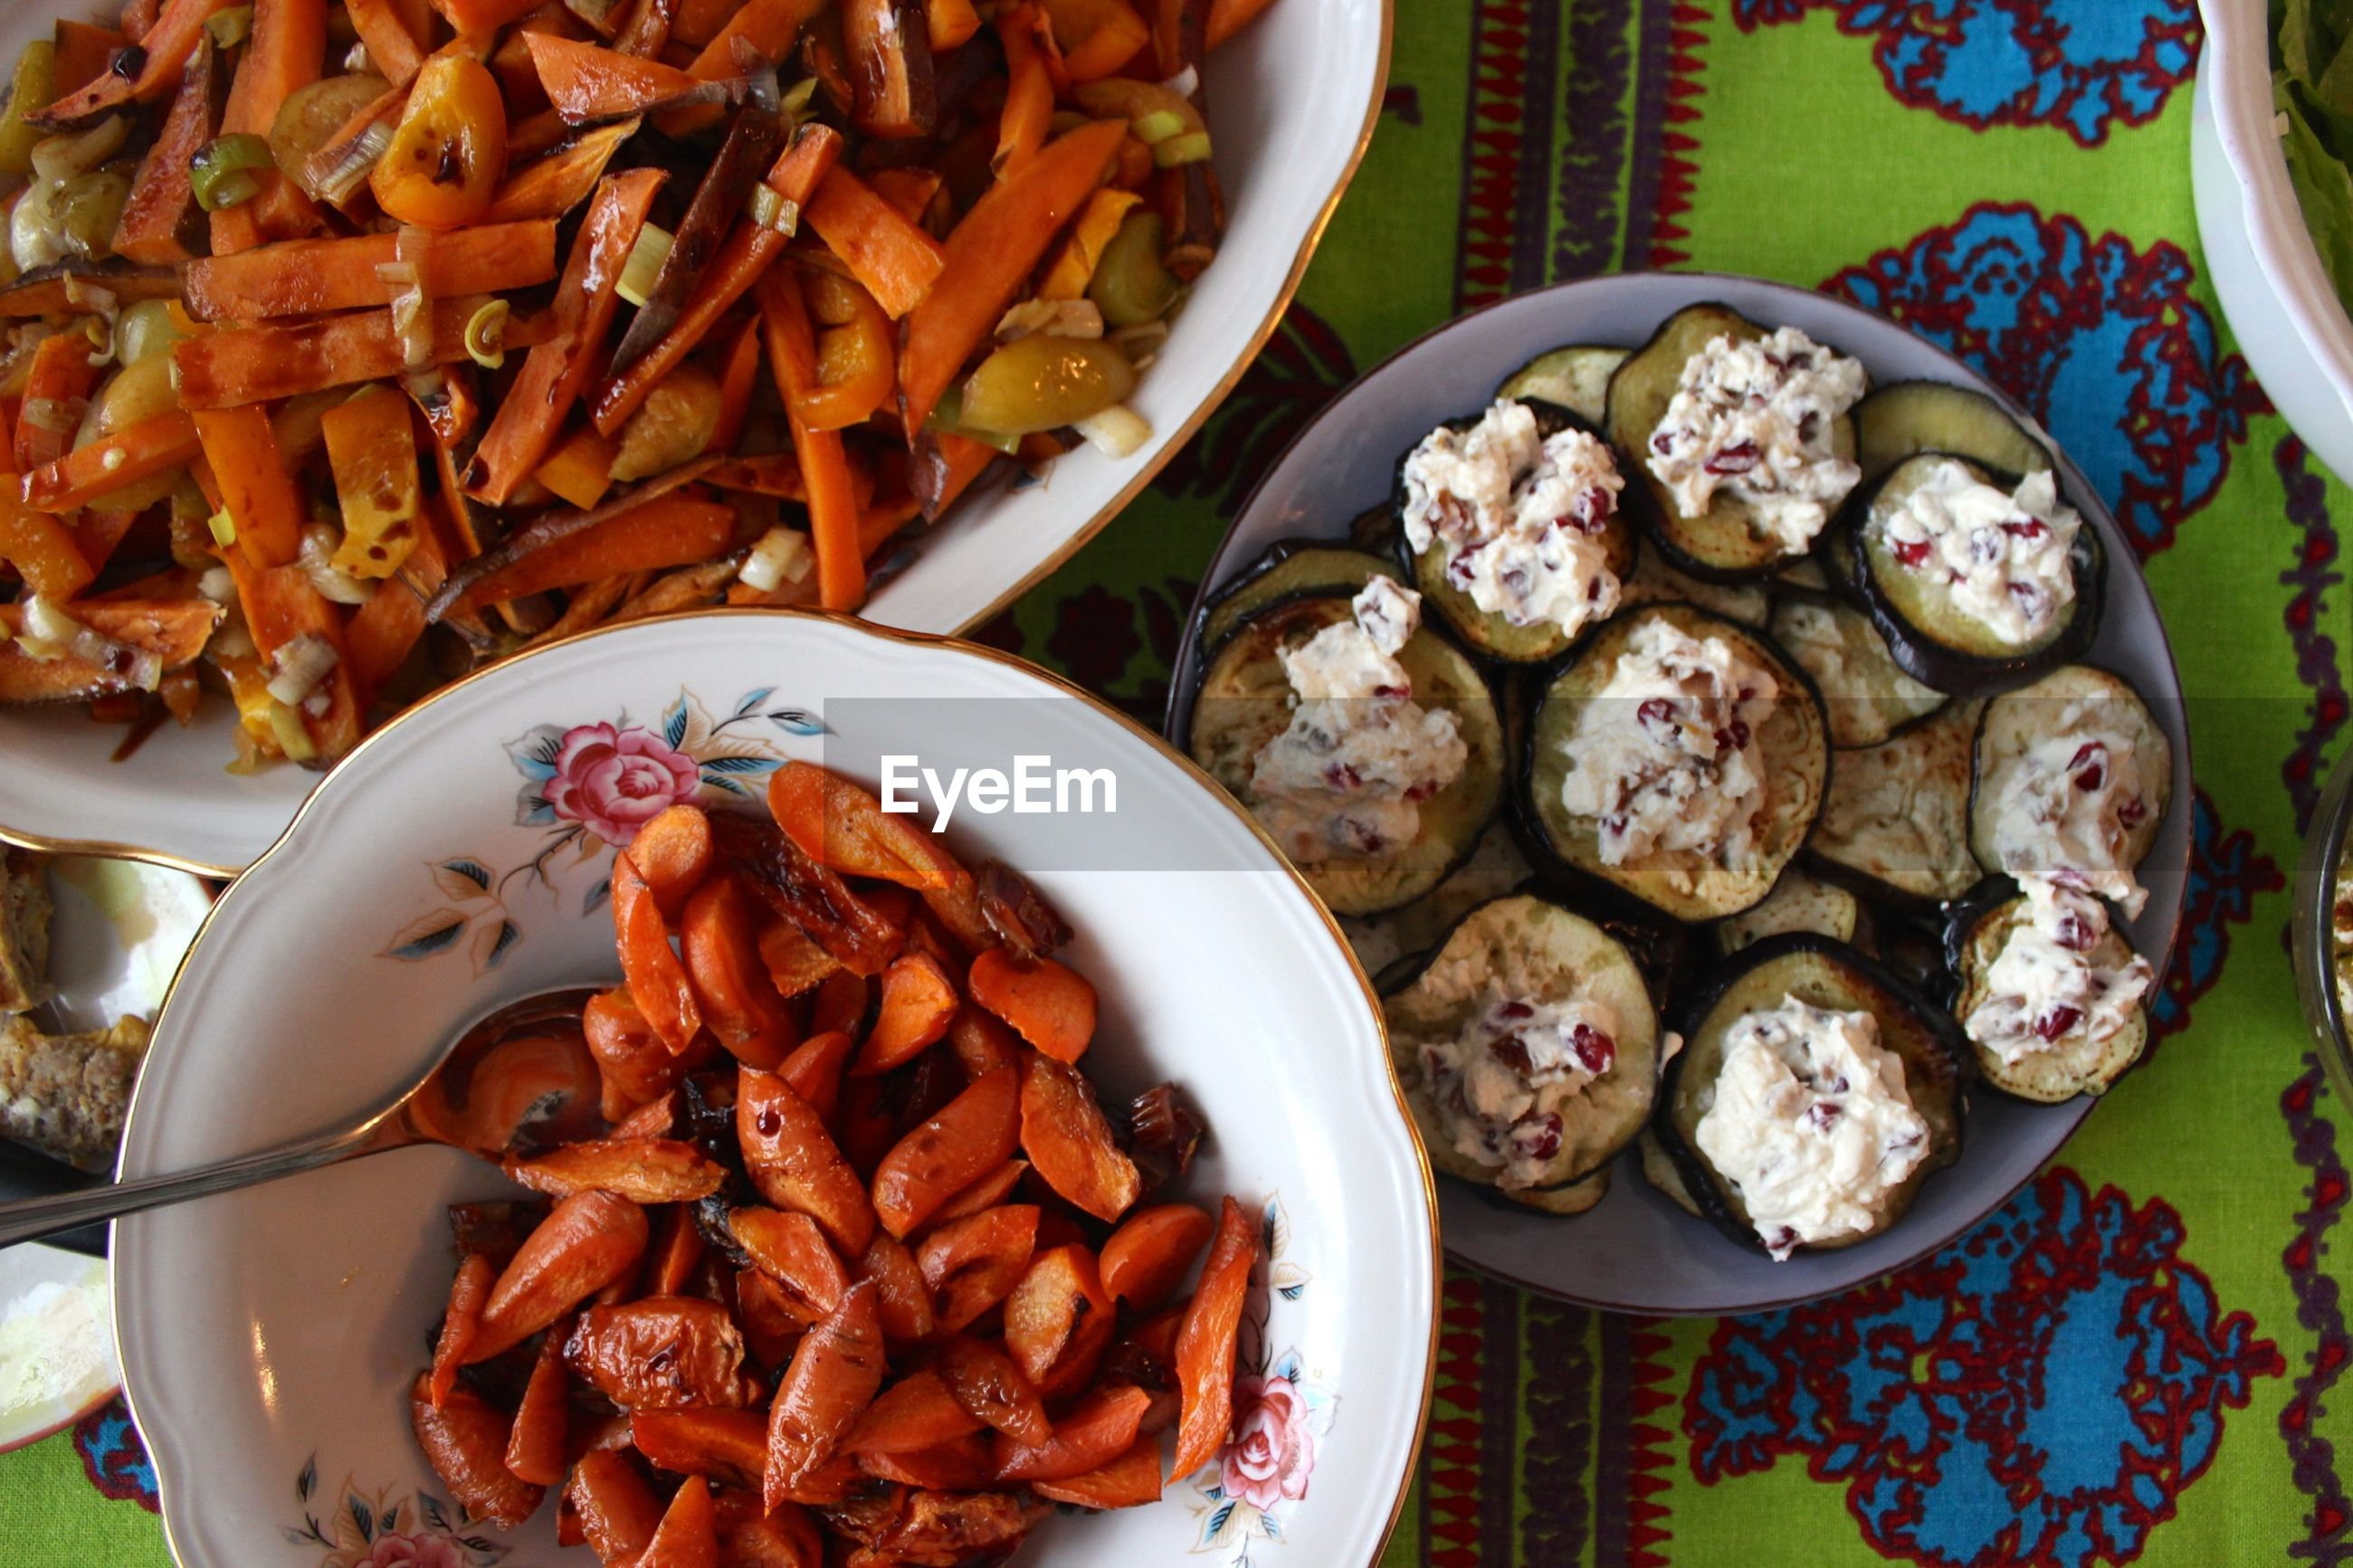 Directly above shot of eggplant with carrots served on table